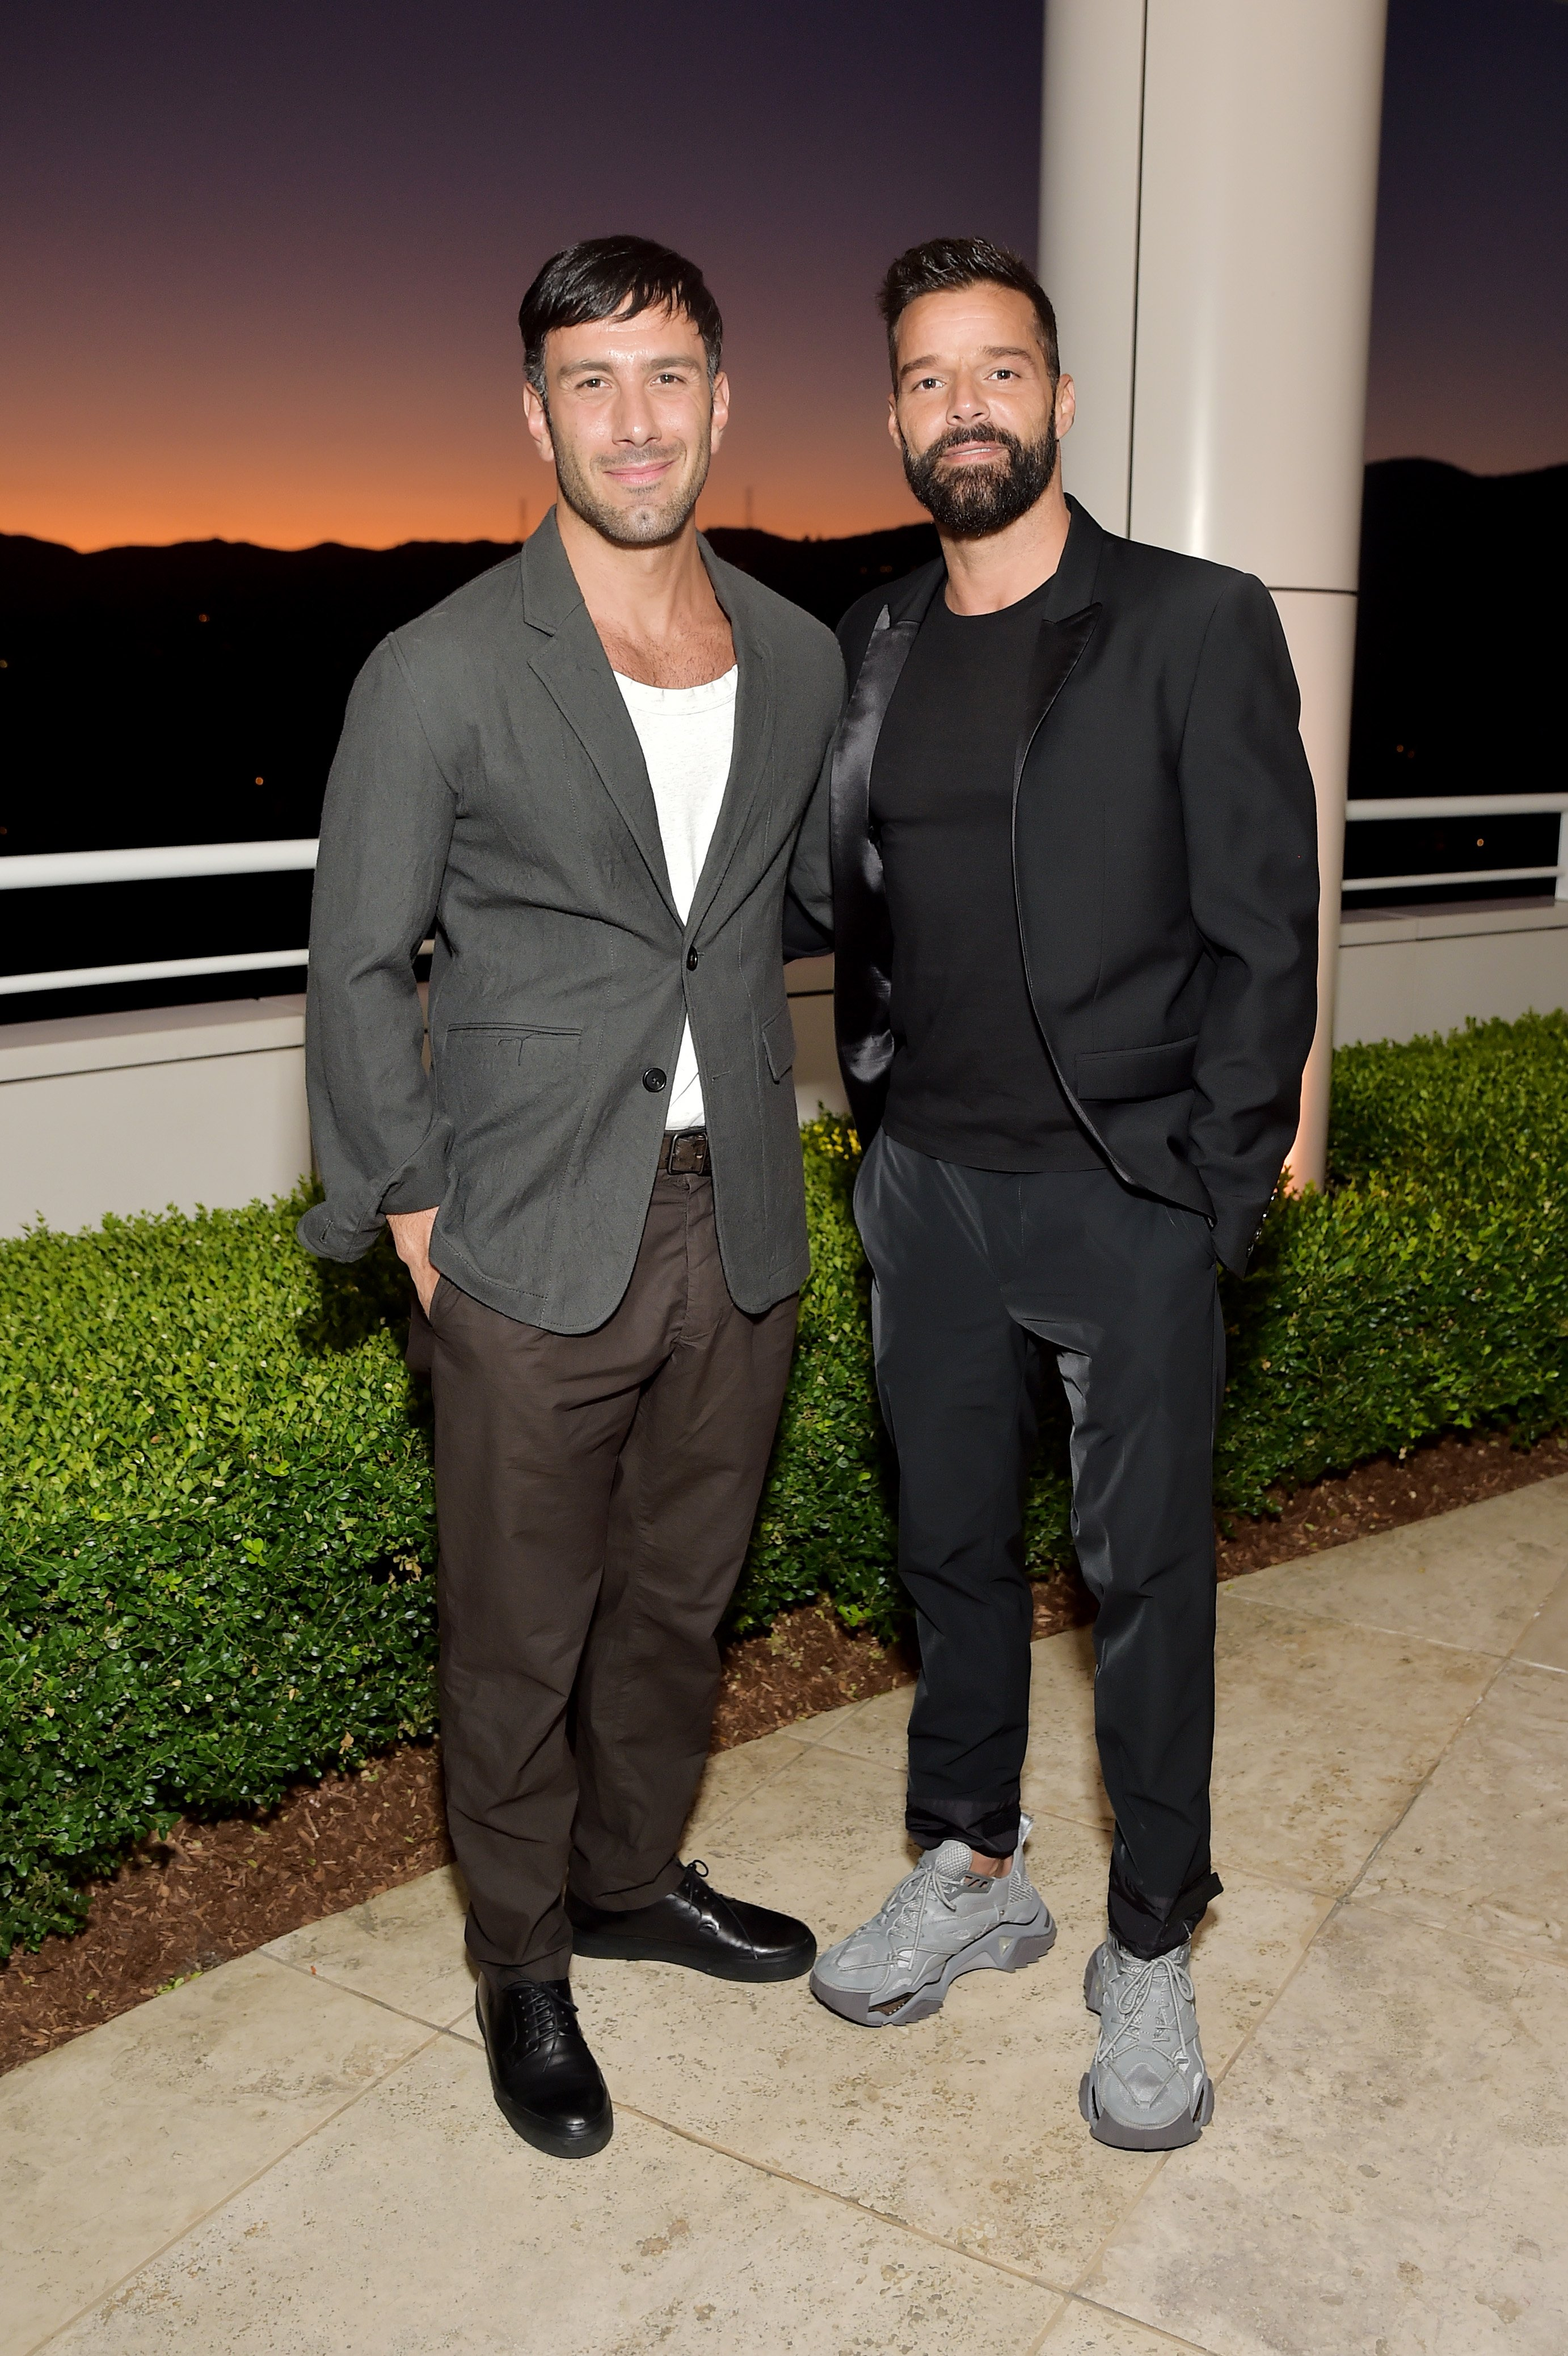 wan Yosef and Ricky Martin attend The J. Paul Getty Medal Dinner on September 16, 2019 in Los Angeles, California. | Source: Getty Images.